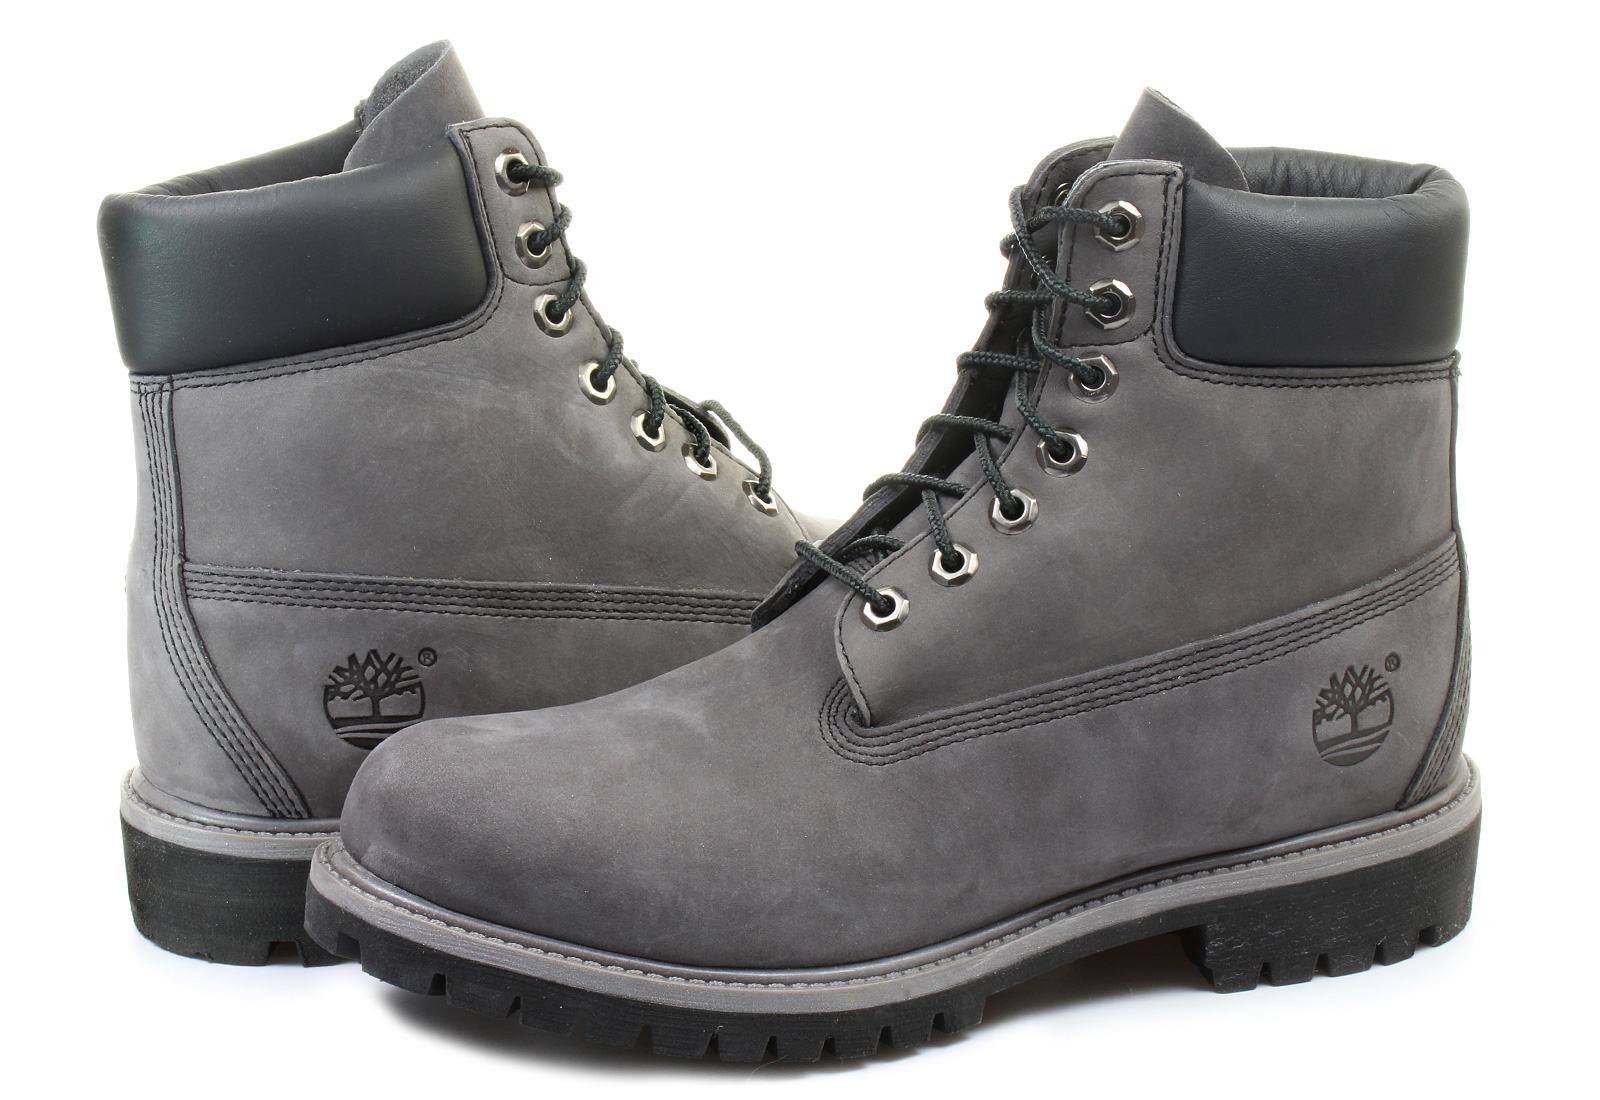 timberland boots 6 inch premium boot 6609a gry